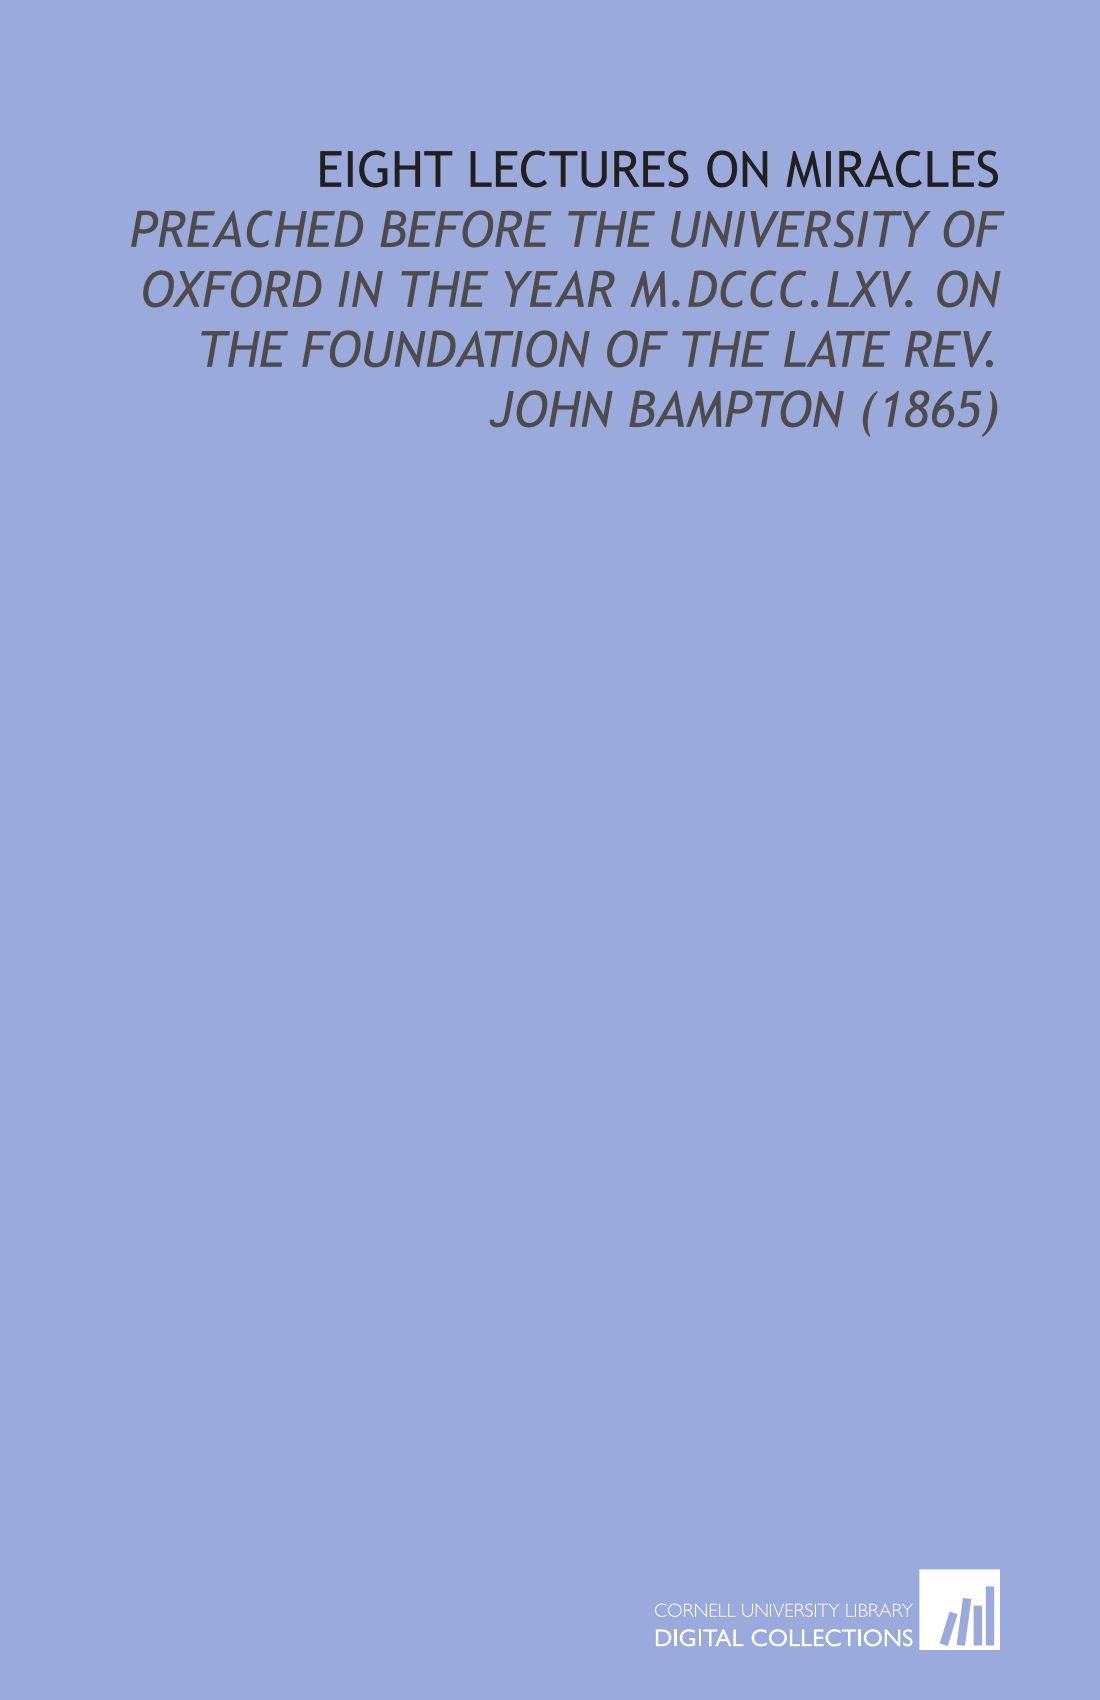 Download Eight Lectures On Miracles: Preached Before the University of Oxford in the Year M.DCCC.LXV. On the Foundation of the Late Rev. John Bampton (1865) PDF